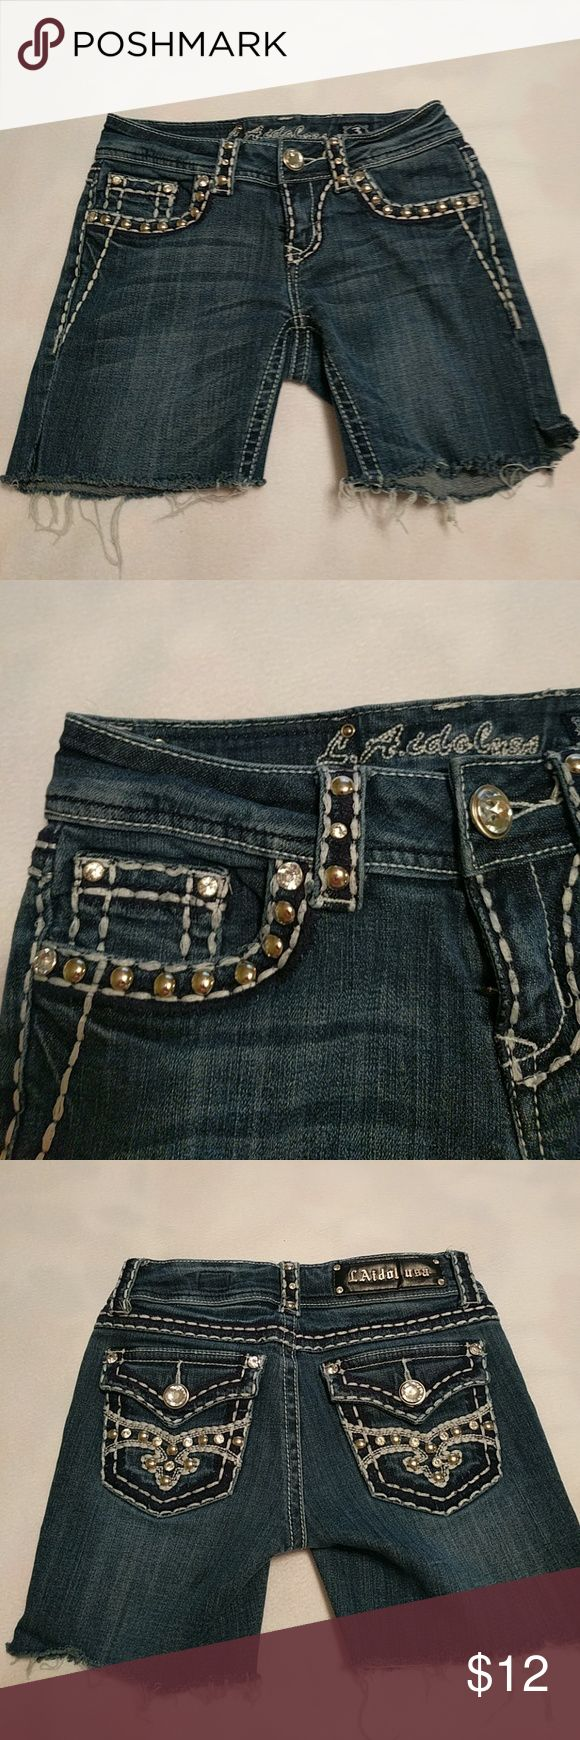 LAidol usa jean shorts These have silver studs and Diamond Stones and are full of bling. LAidol usa Shorts Jean Shorts